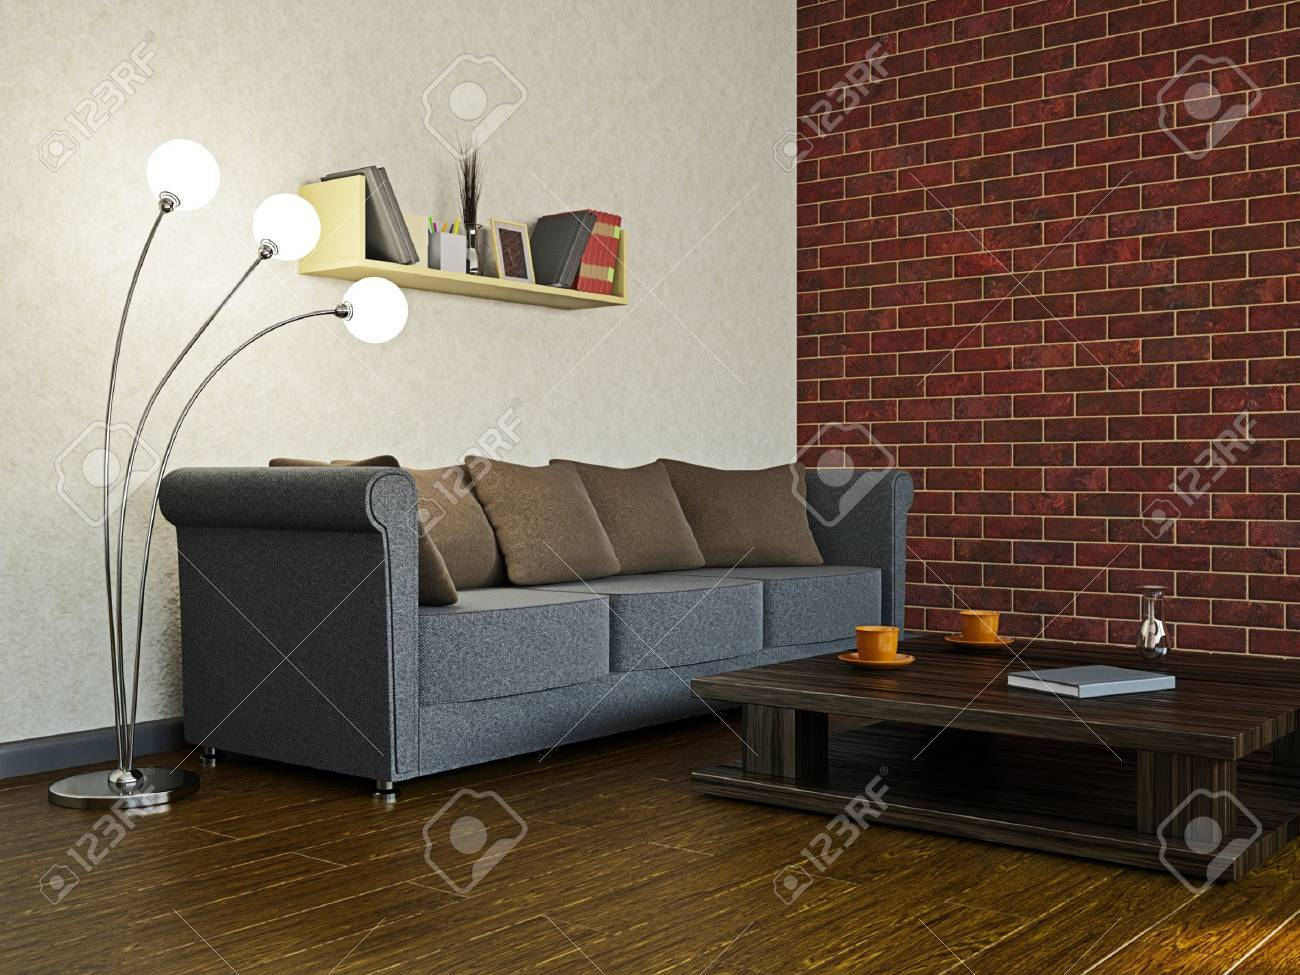 Sofa in the livingroom near the wall Stock Photo - 18058061